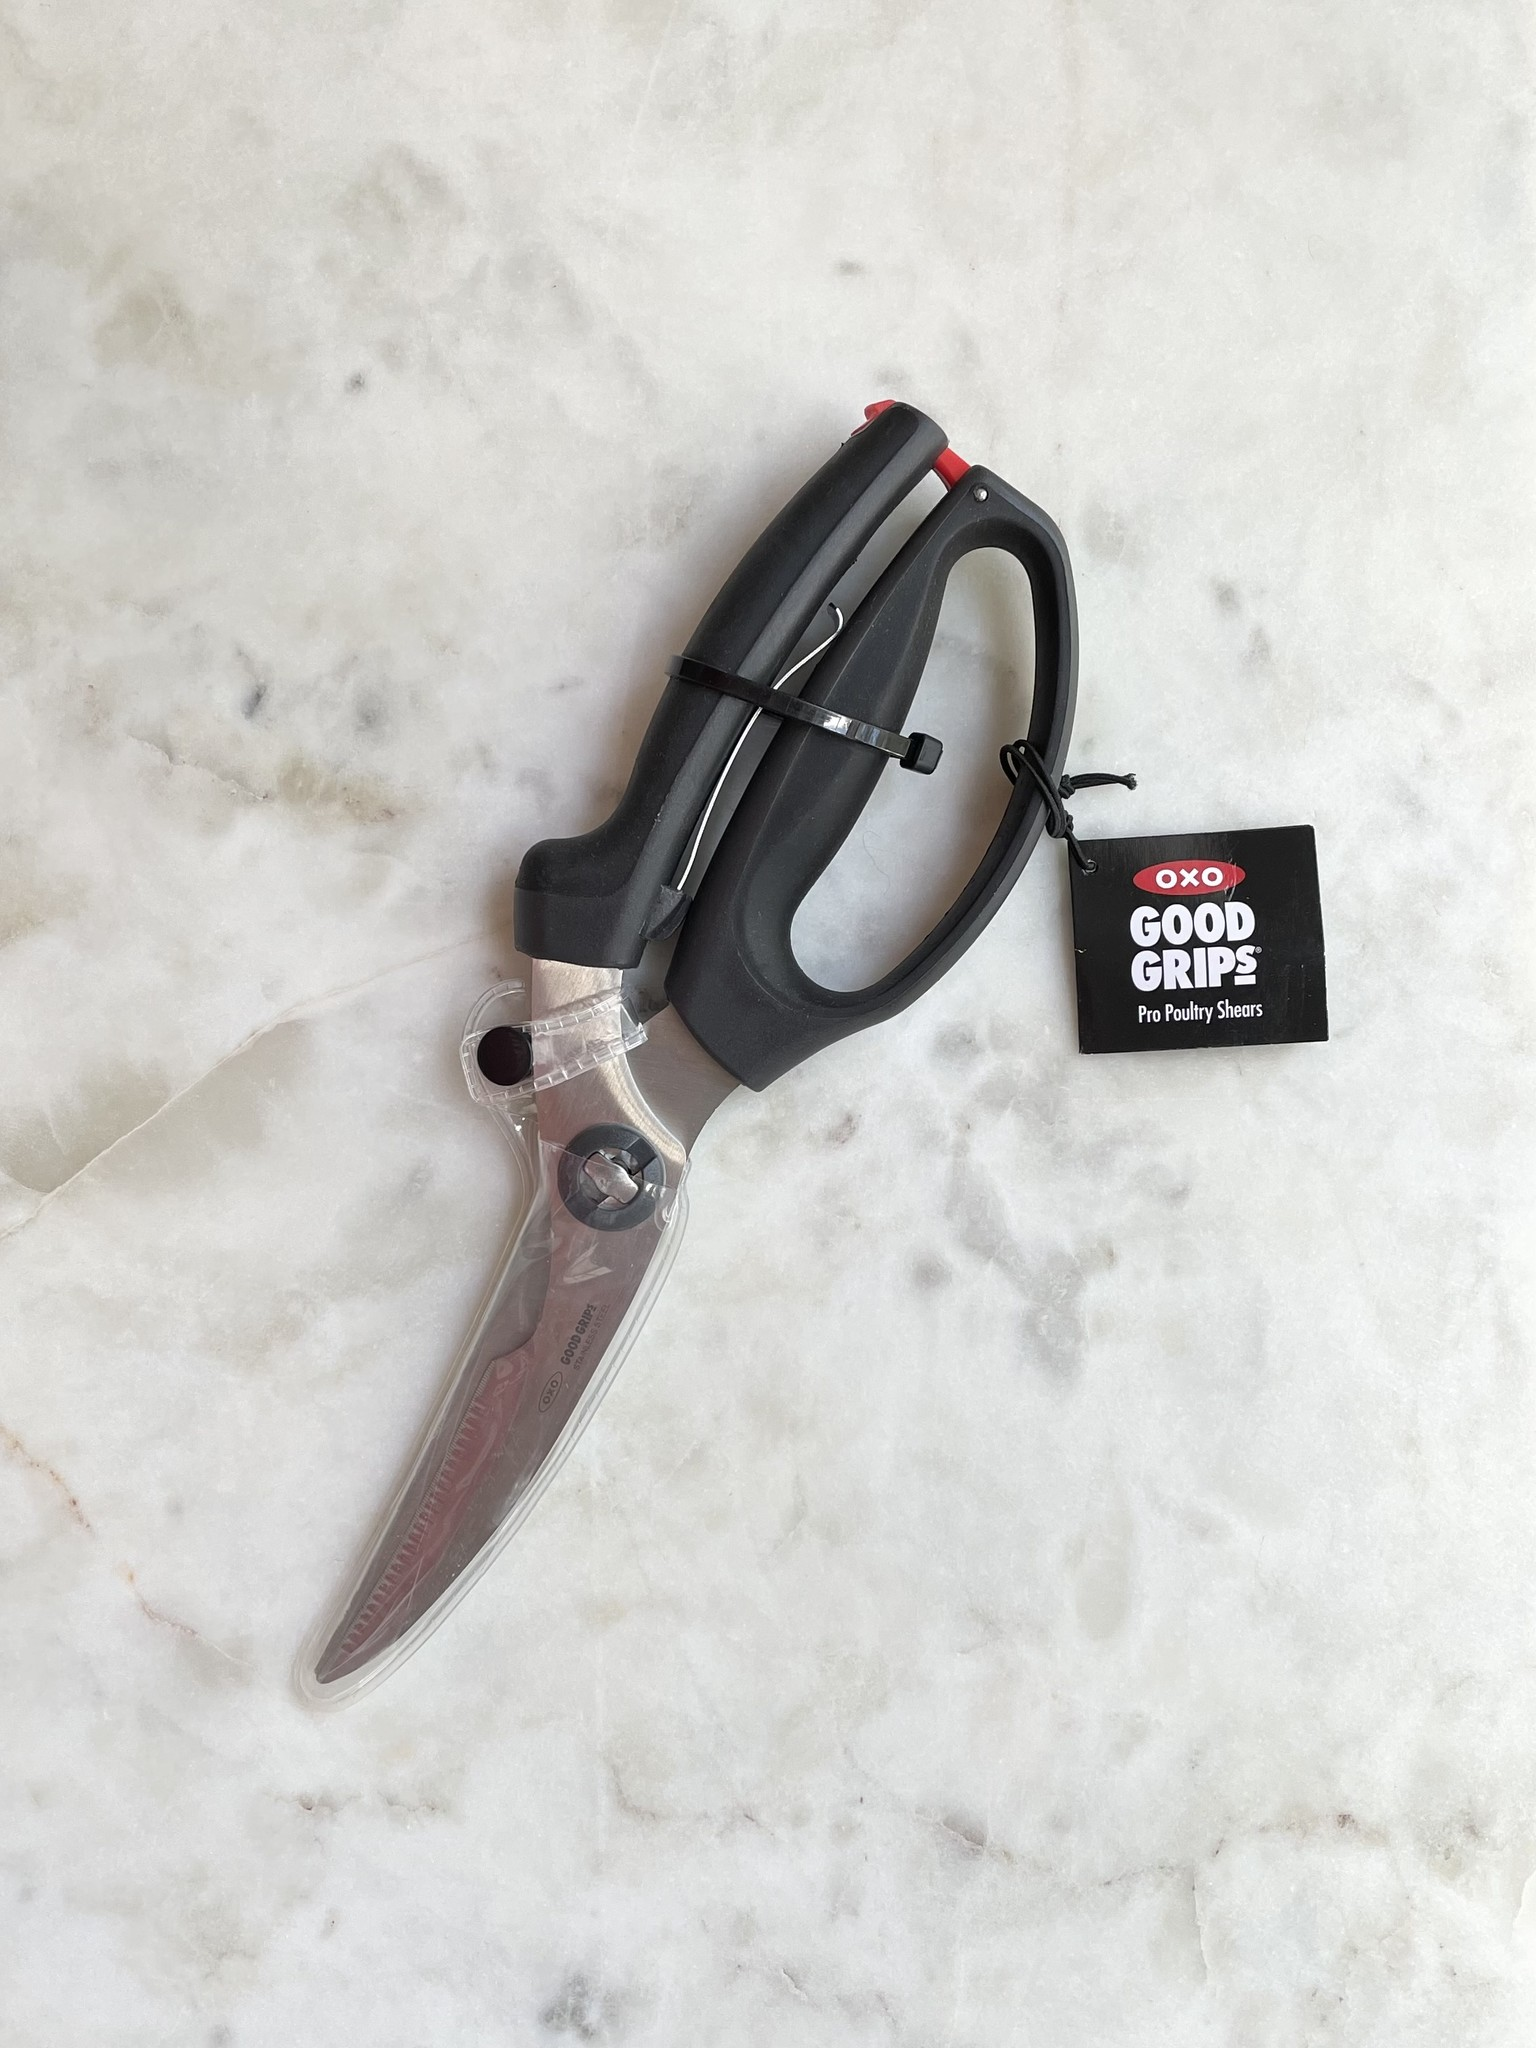 OXO Good Grips Pro Poultry Shears-1